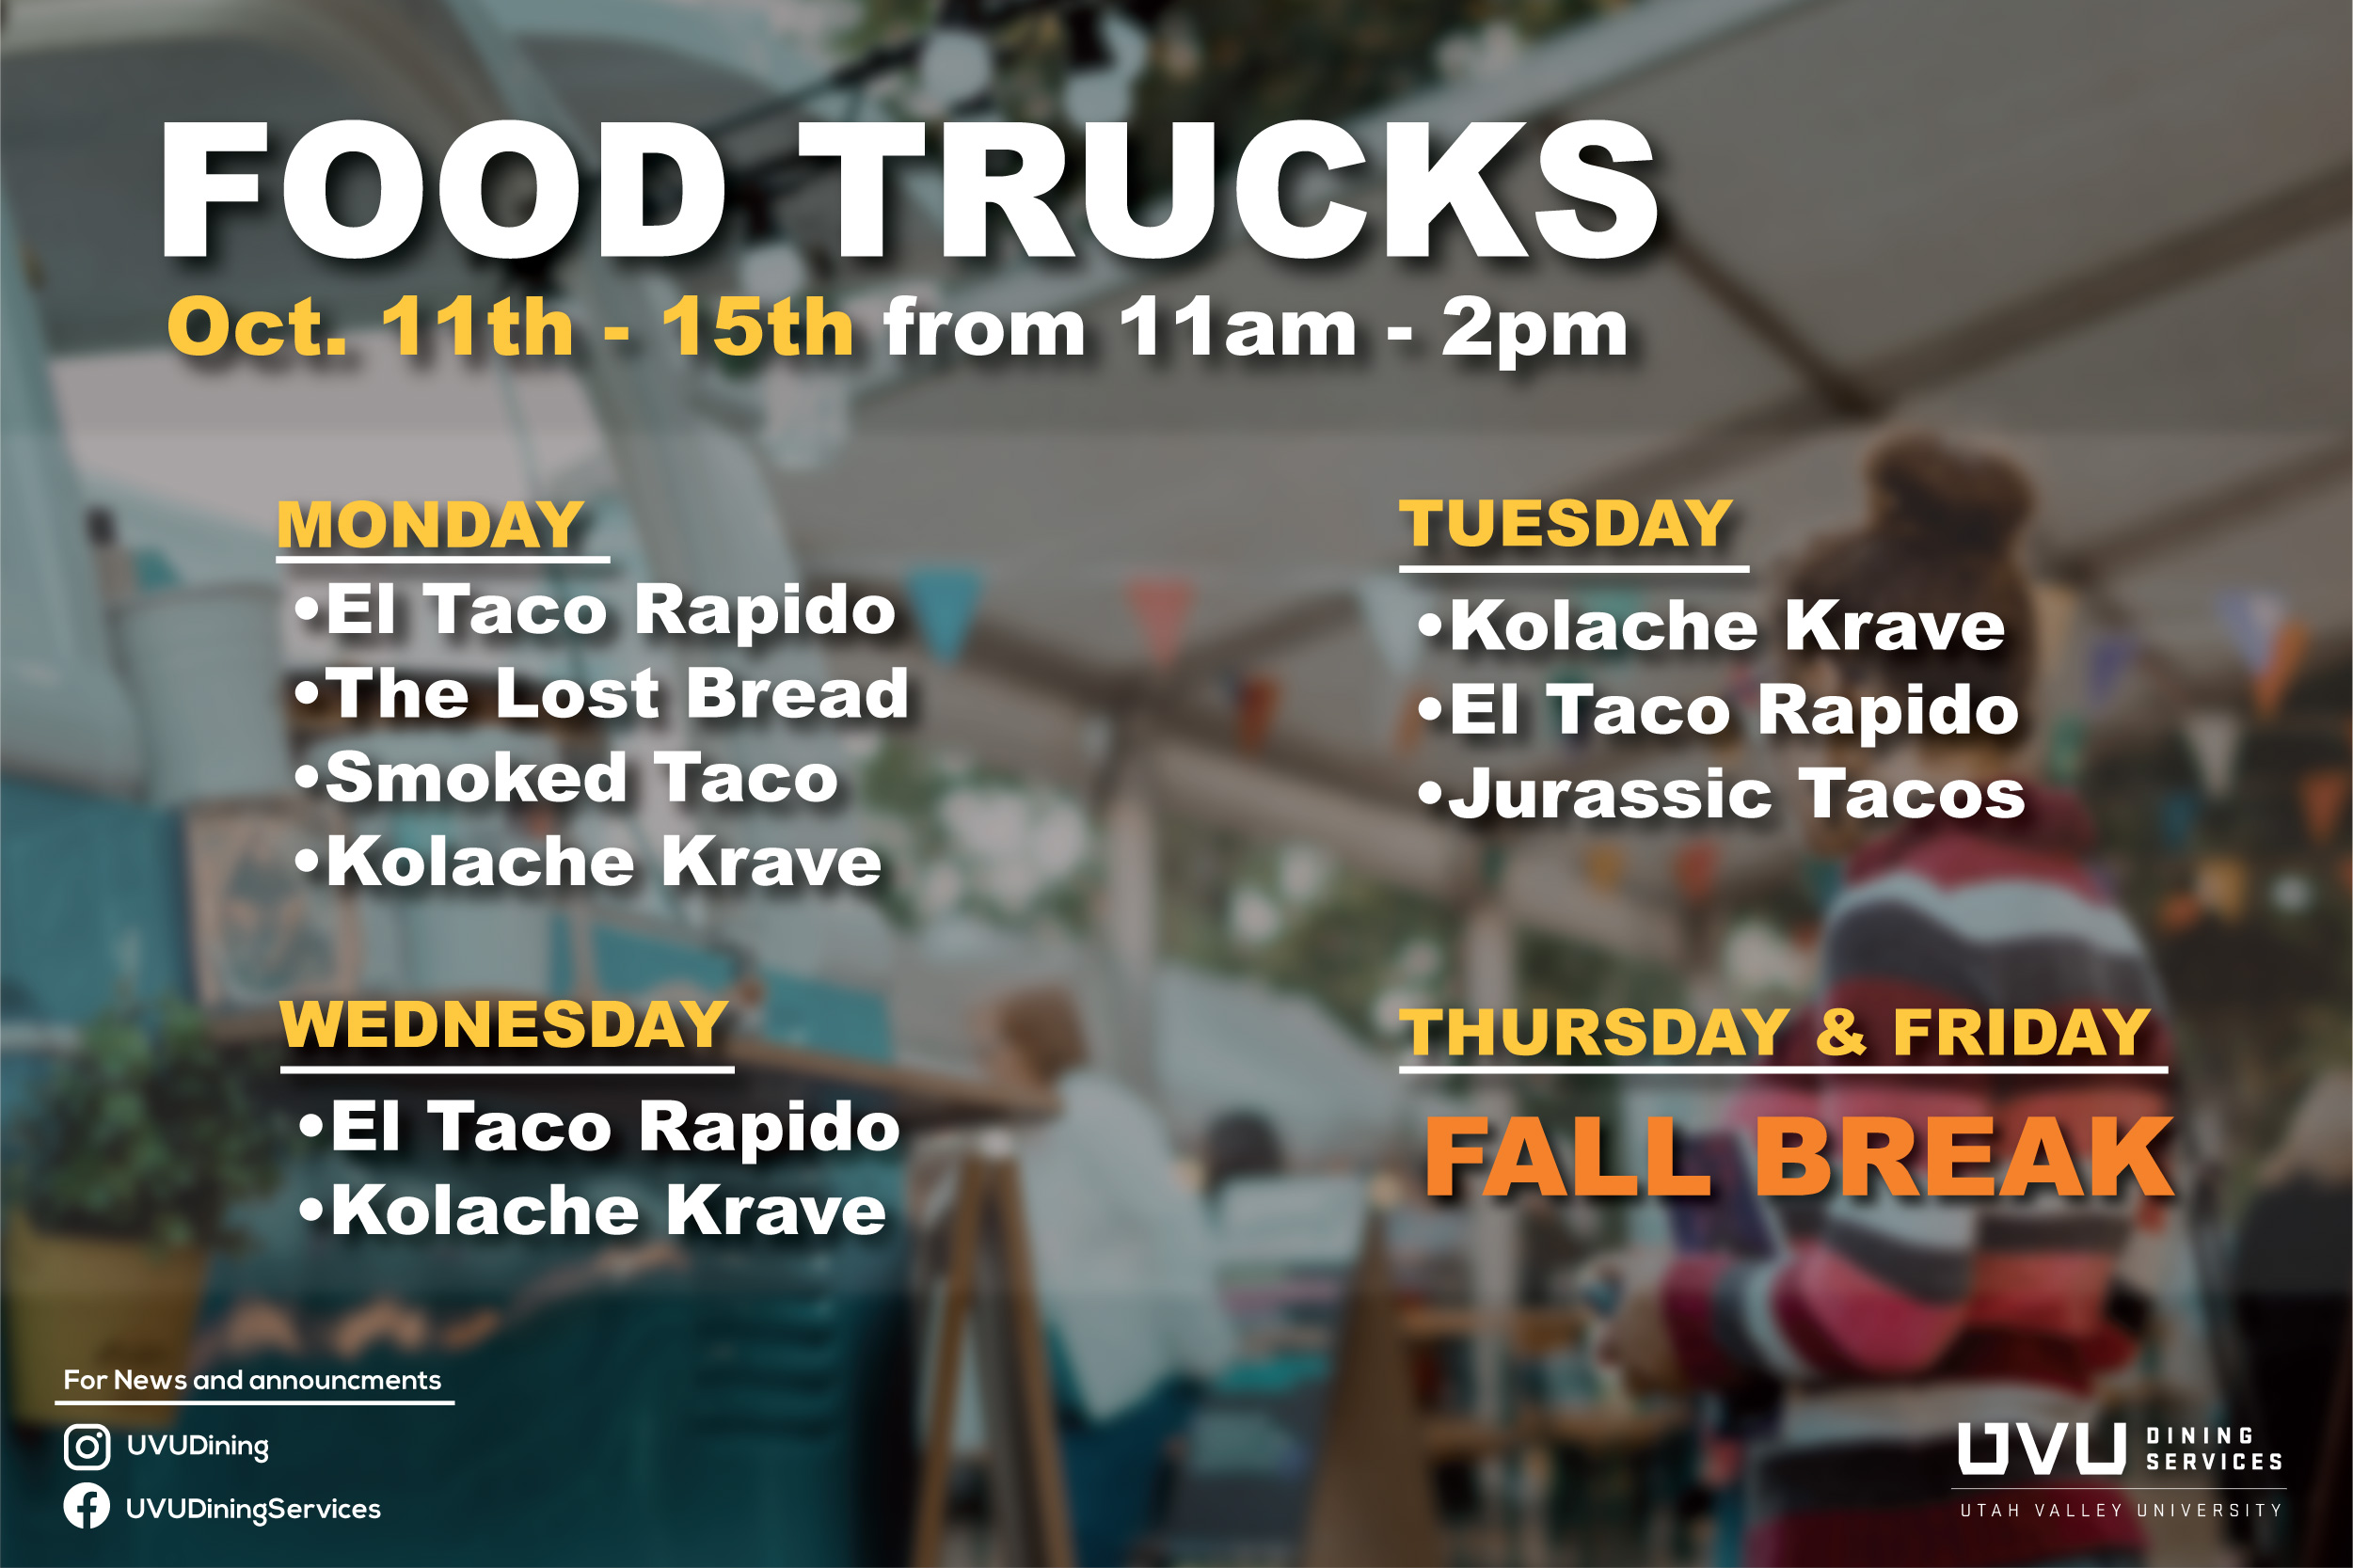 Food Truck Oct. 11th - 15th